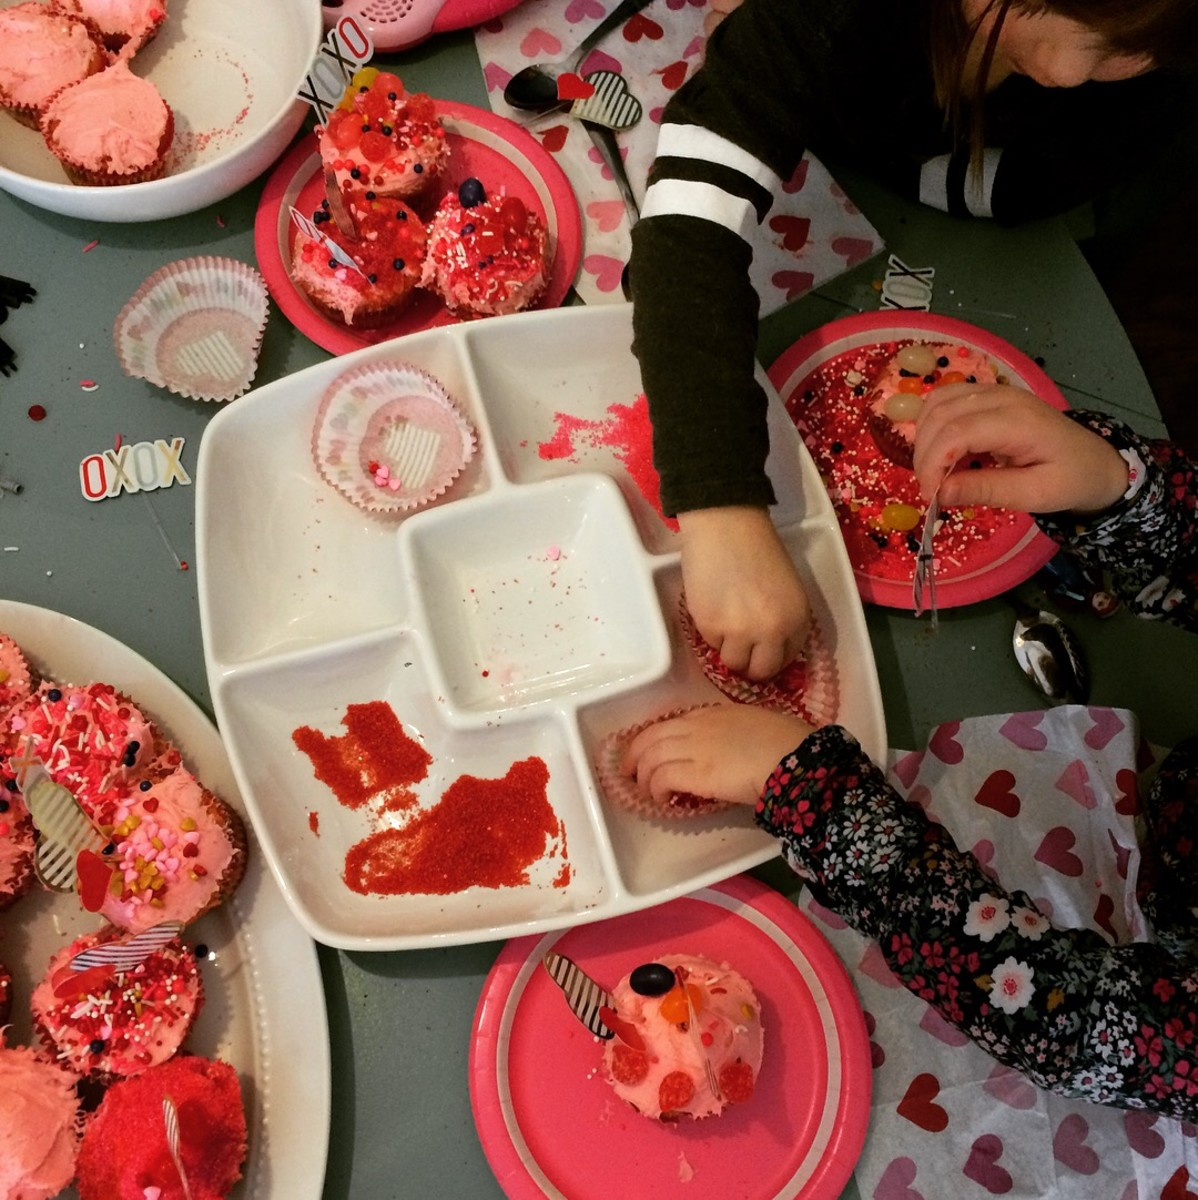 Making holiday themed cupcakes for every holiday is just one of the cheesy traditions my kids and I enjoy together.